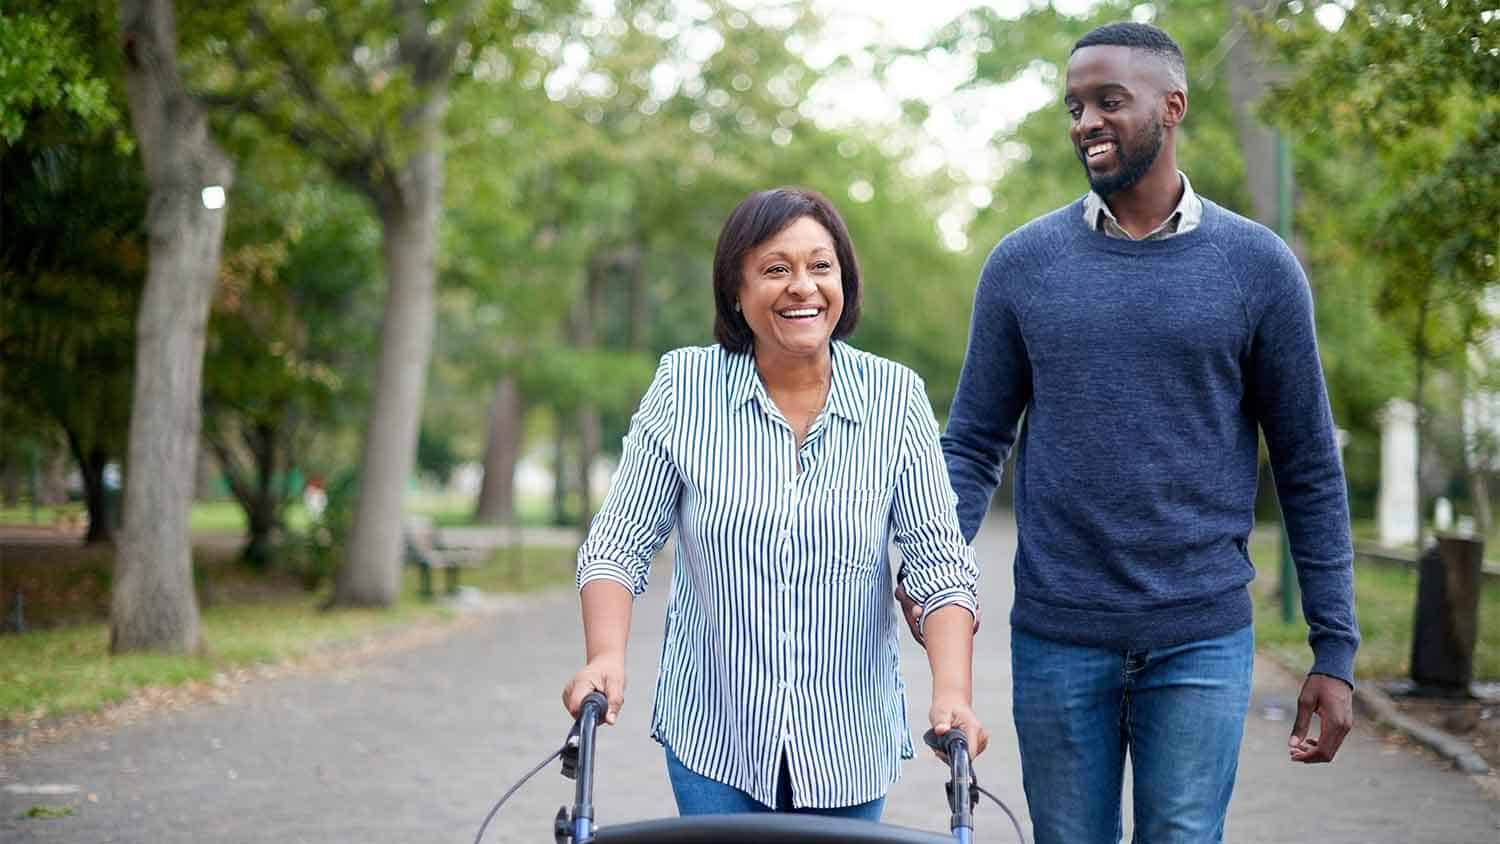 Man walking next to a woman using a walking aide